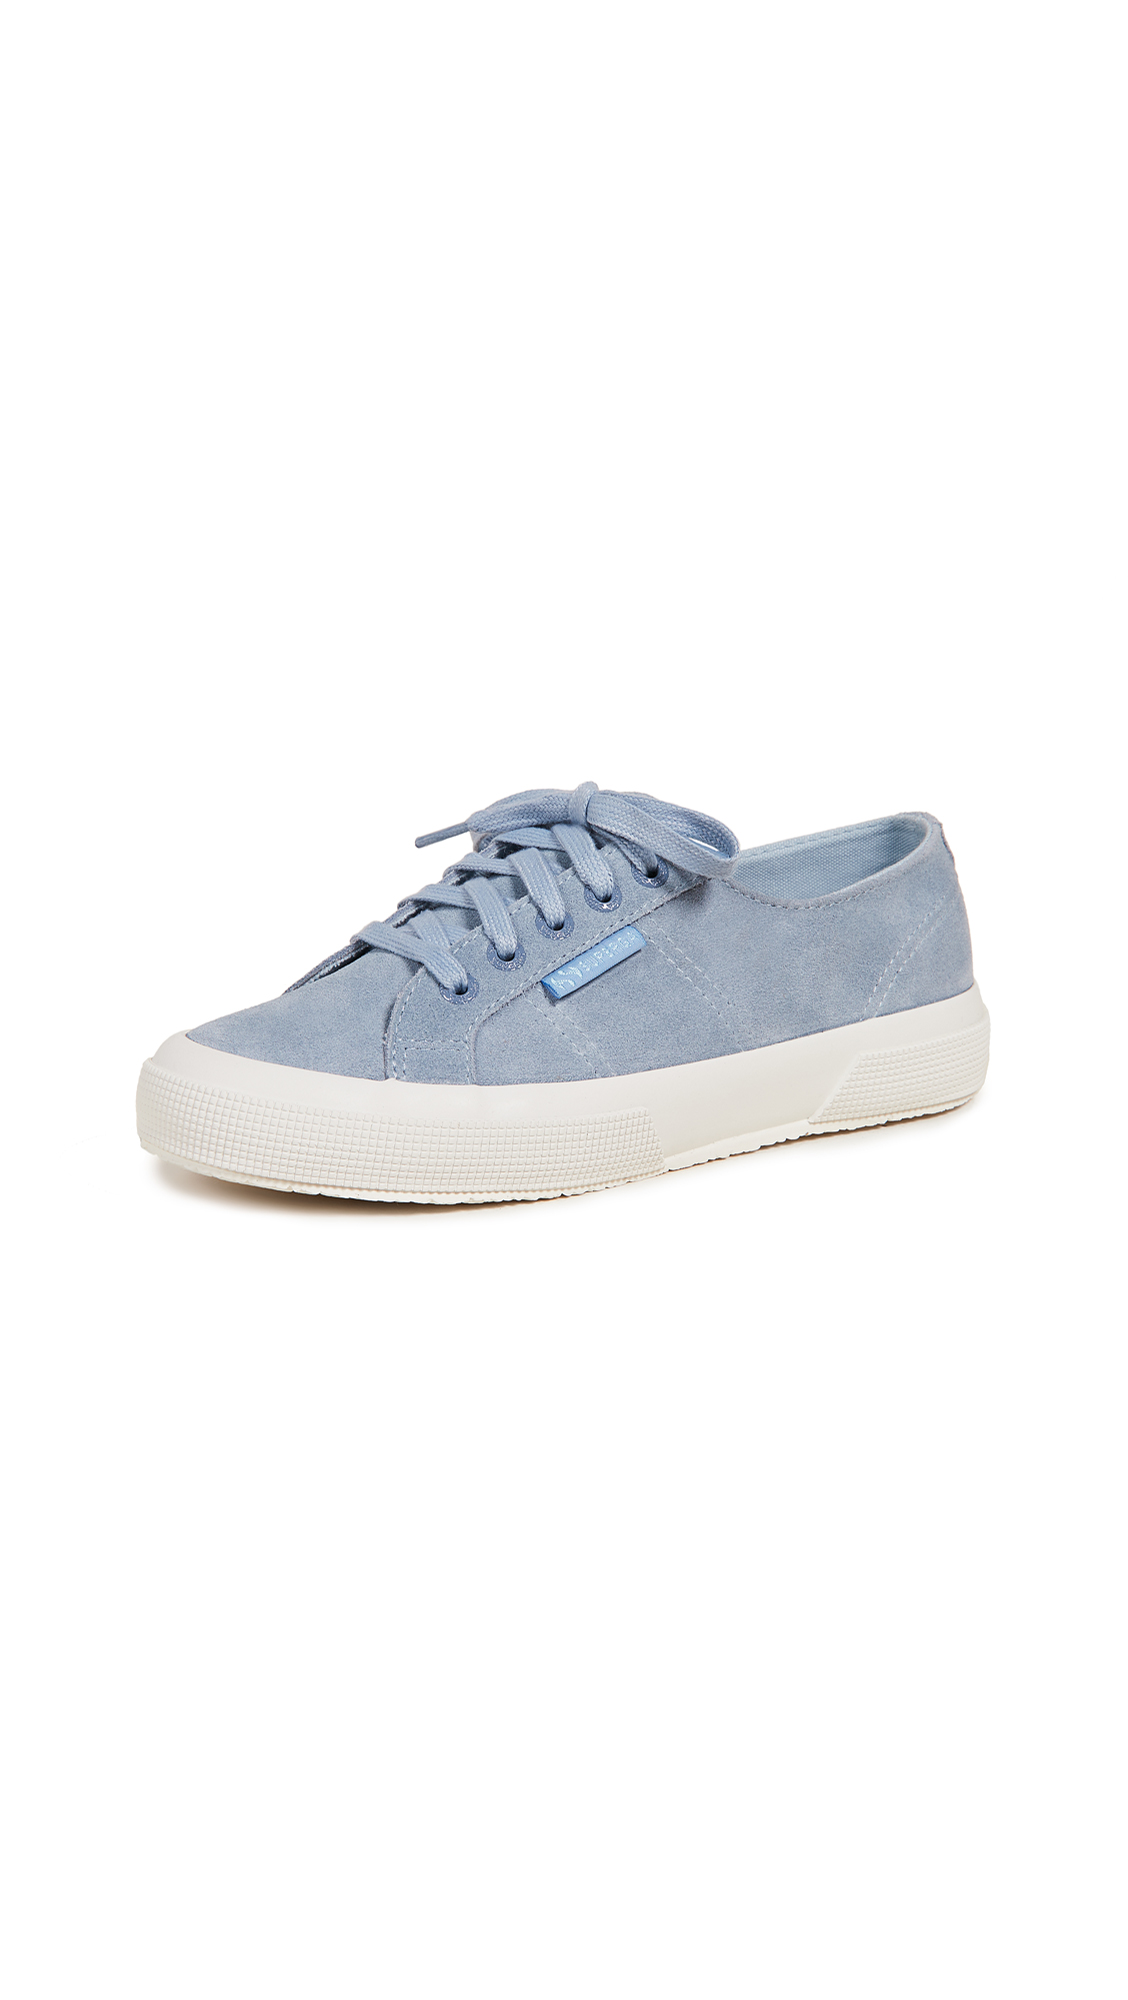 Superga 2750 Suecotlinu Sneakers - Denim Blue